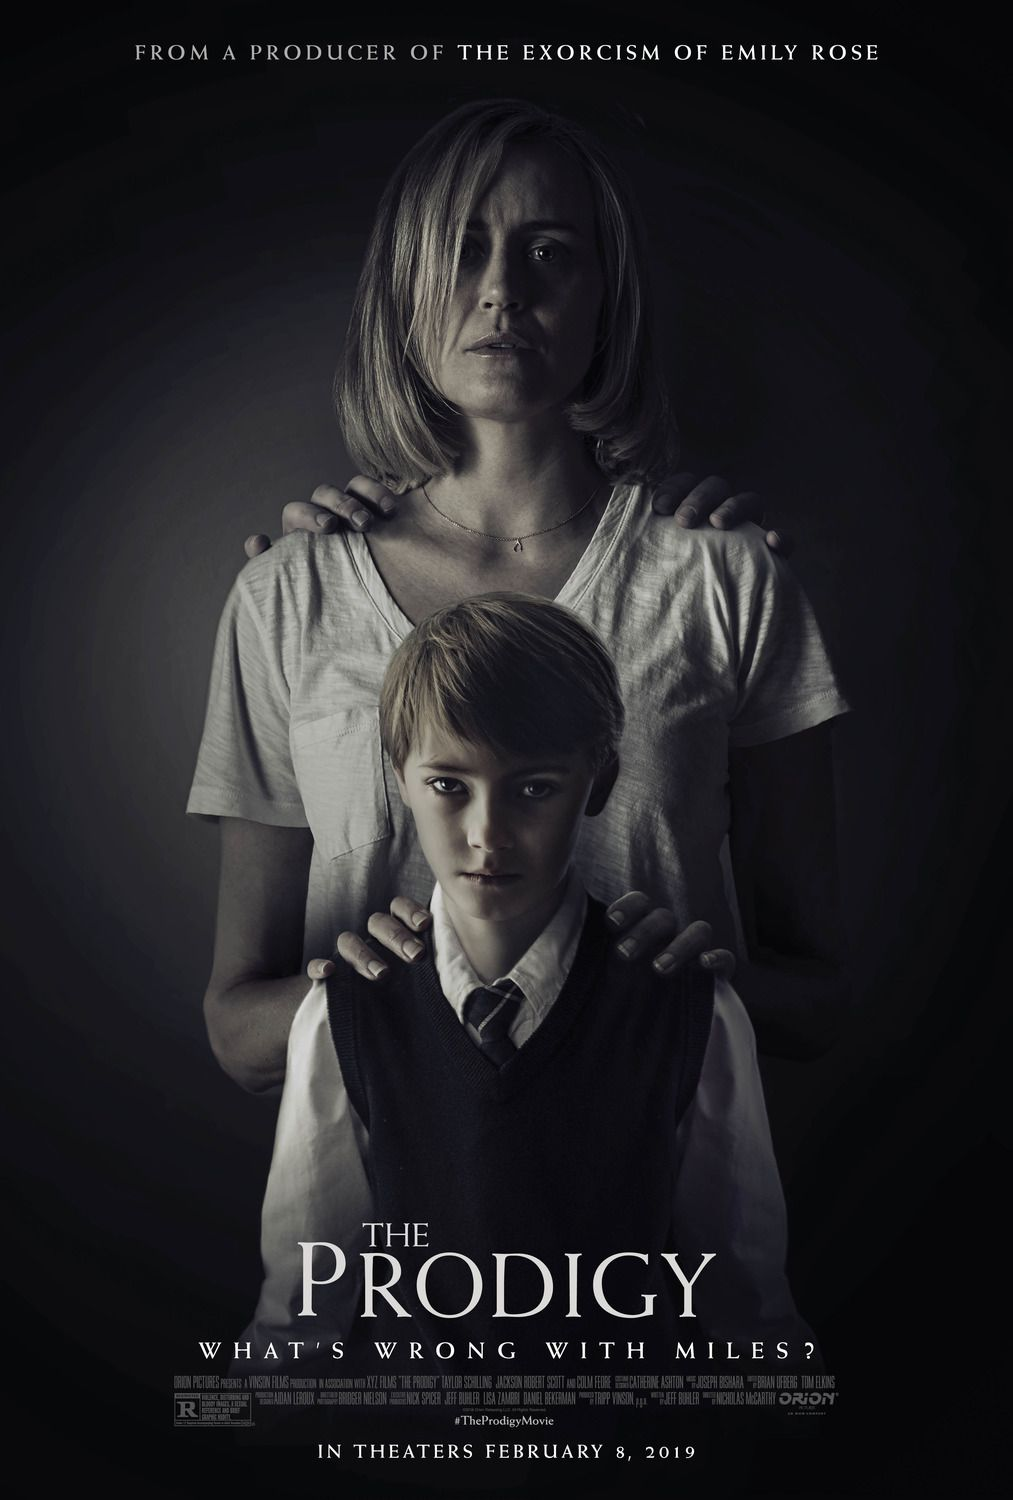 The Prodigy (2019) What's wrong with Miles - Taylor Schilling, Jackson Robert Scott, Colm Feore, Brittany Allen